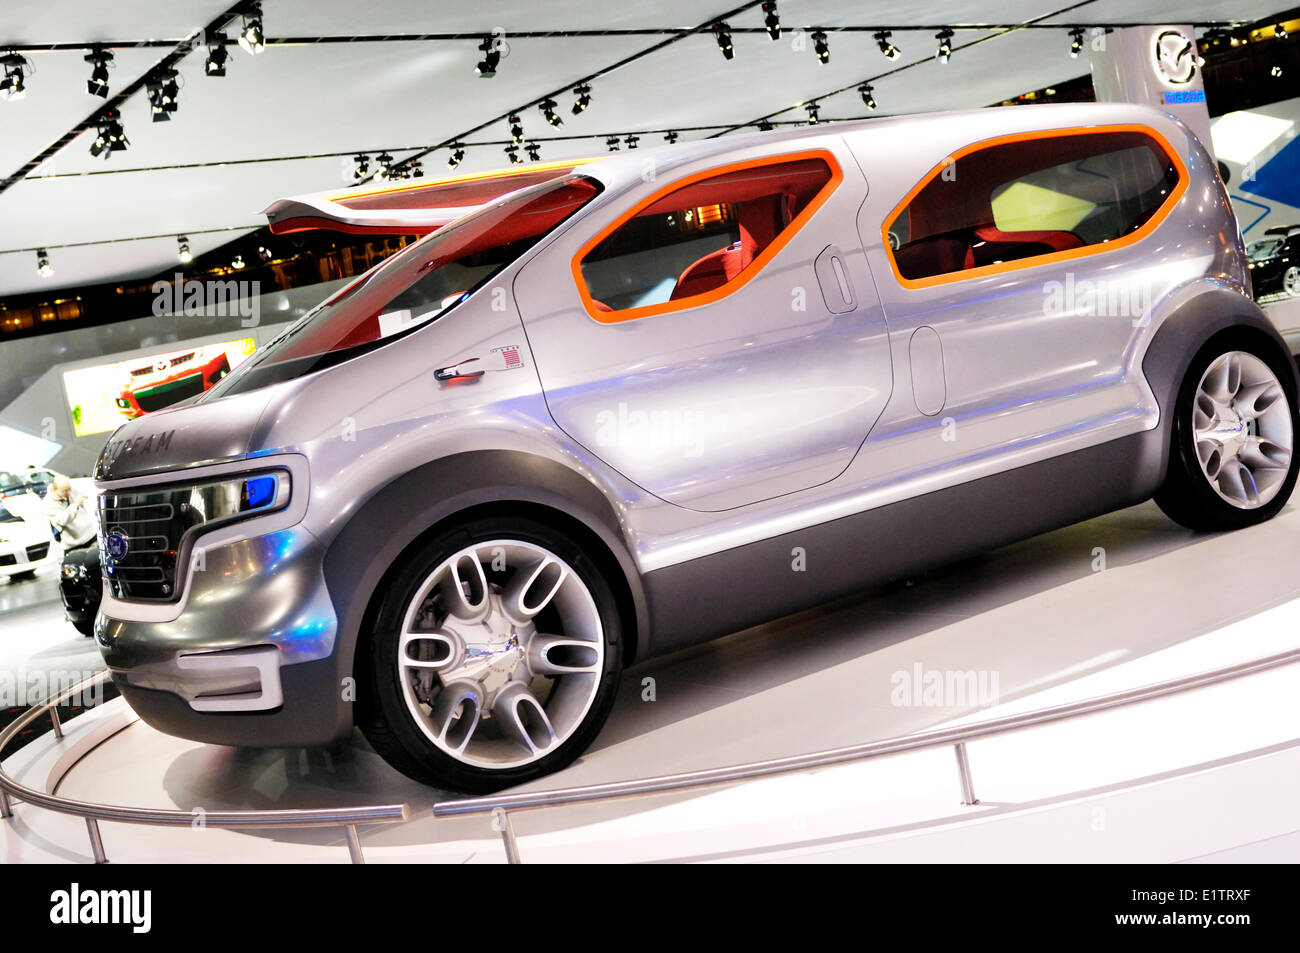 Ford Airstream crossover futuristico concept car powered by HySeries drive plug-in ibrido idrogeno celle a combustibile Immagini Stock